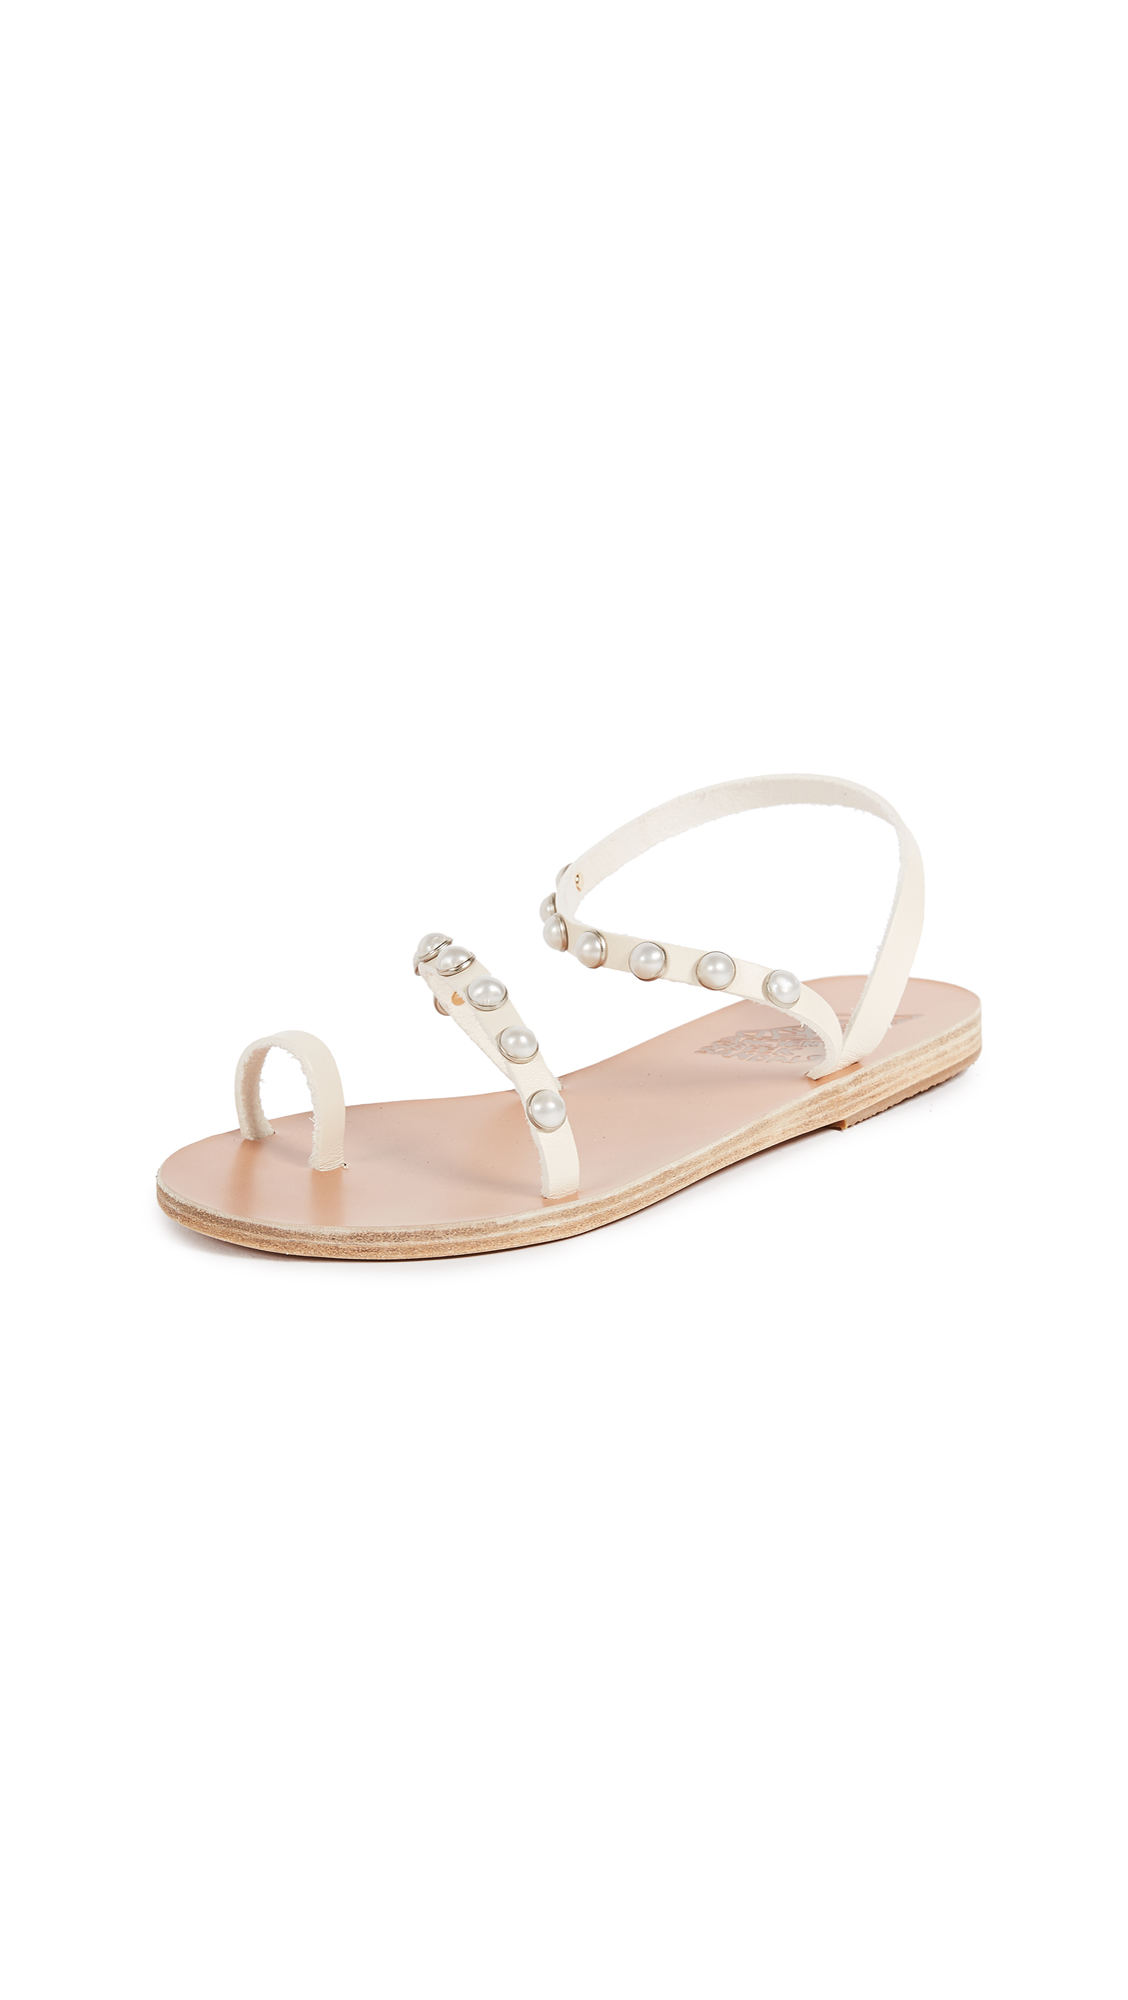 Ancient Greek Sandals Apli Eleftheria Sandals - Off White